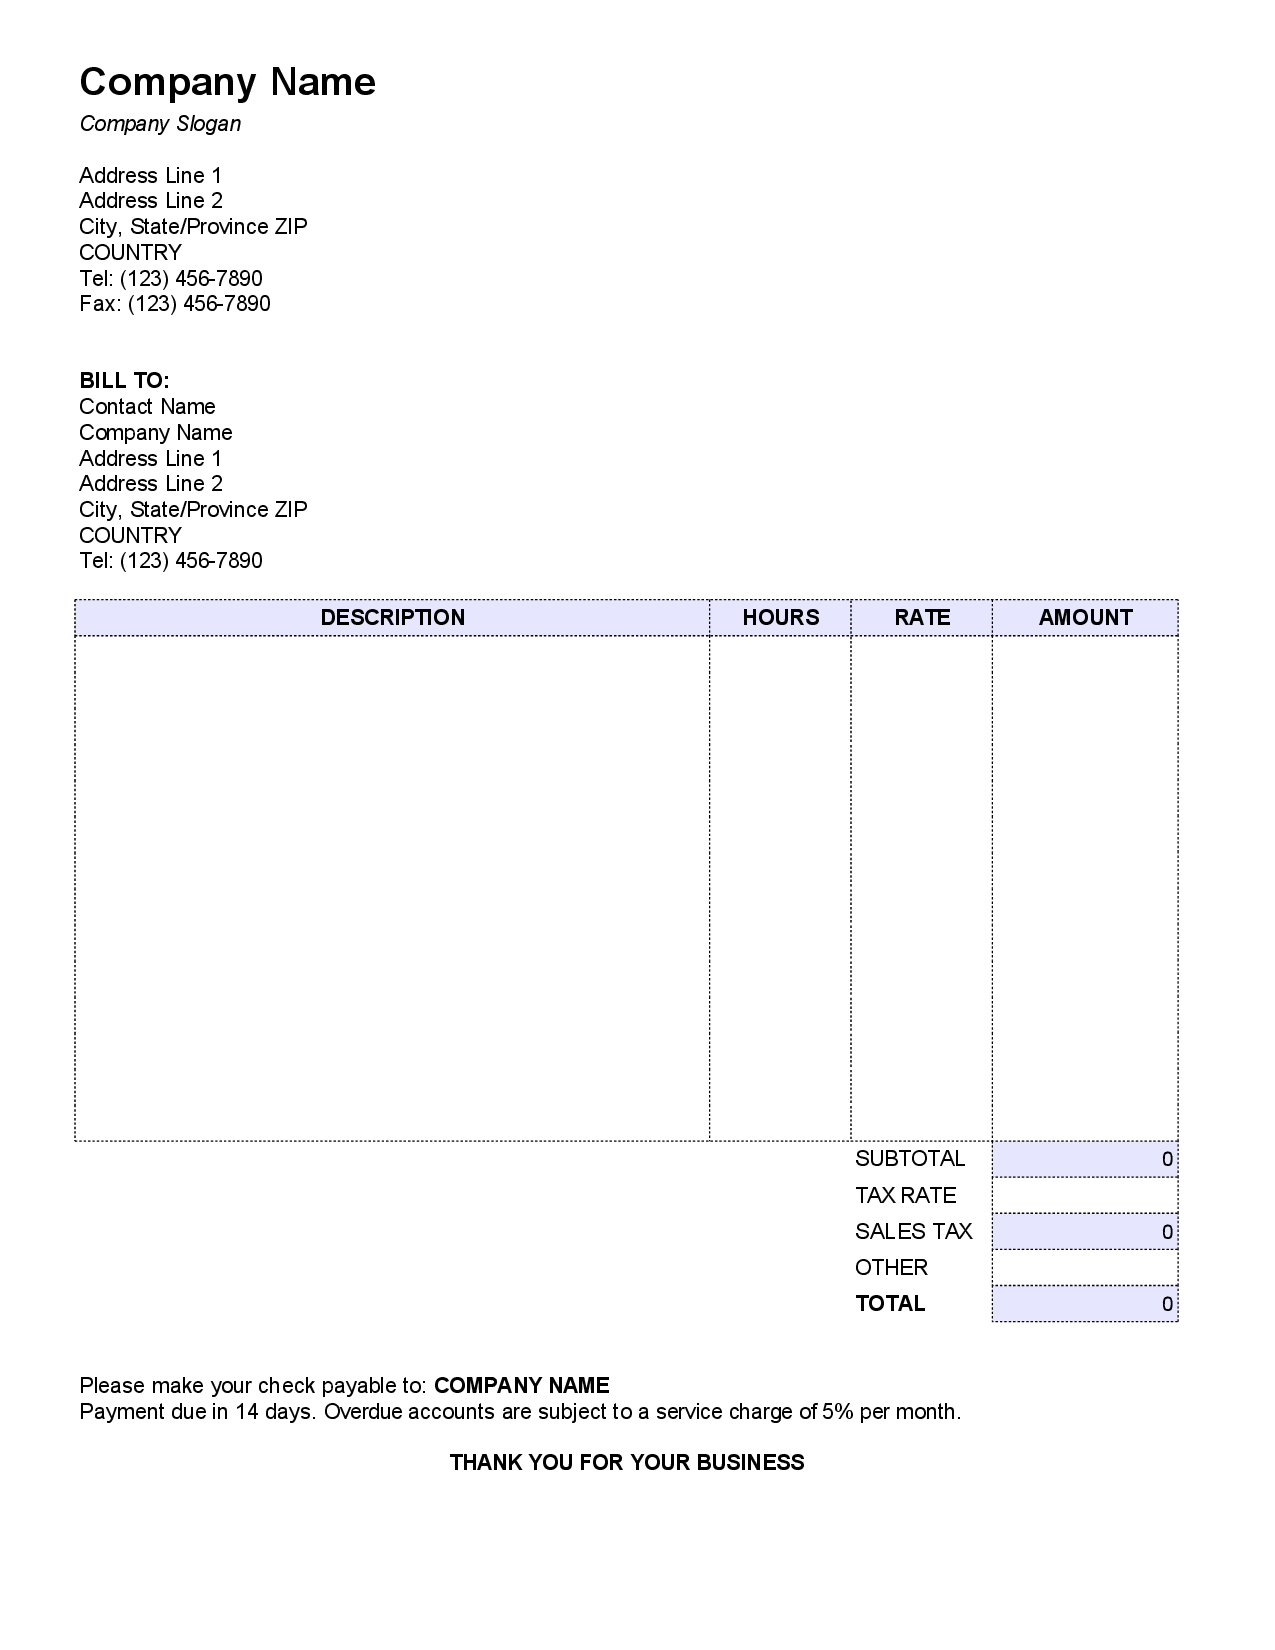 Free Small Business Invoice Template and Invoices for Small Business Resume Templates